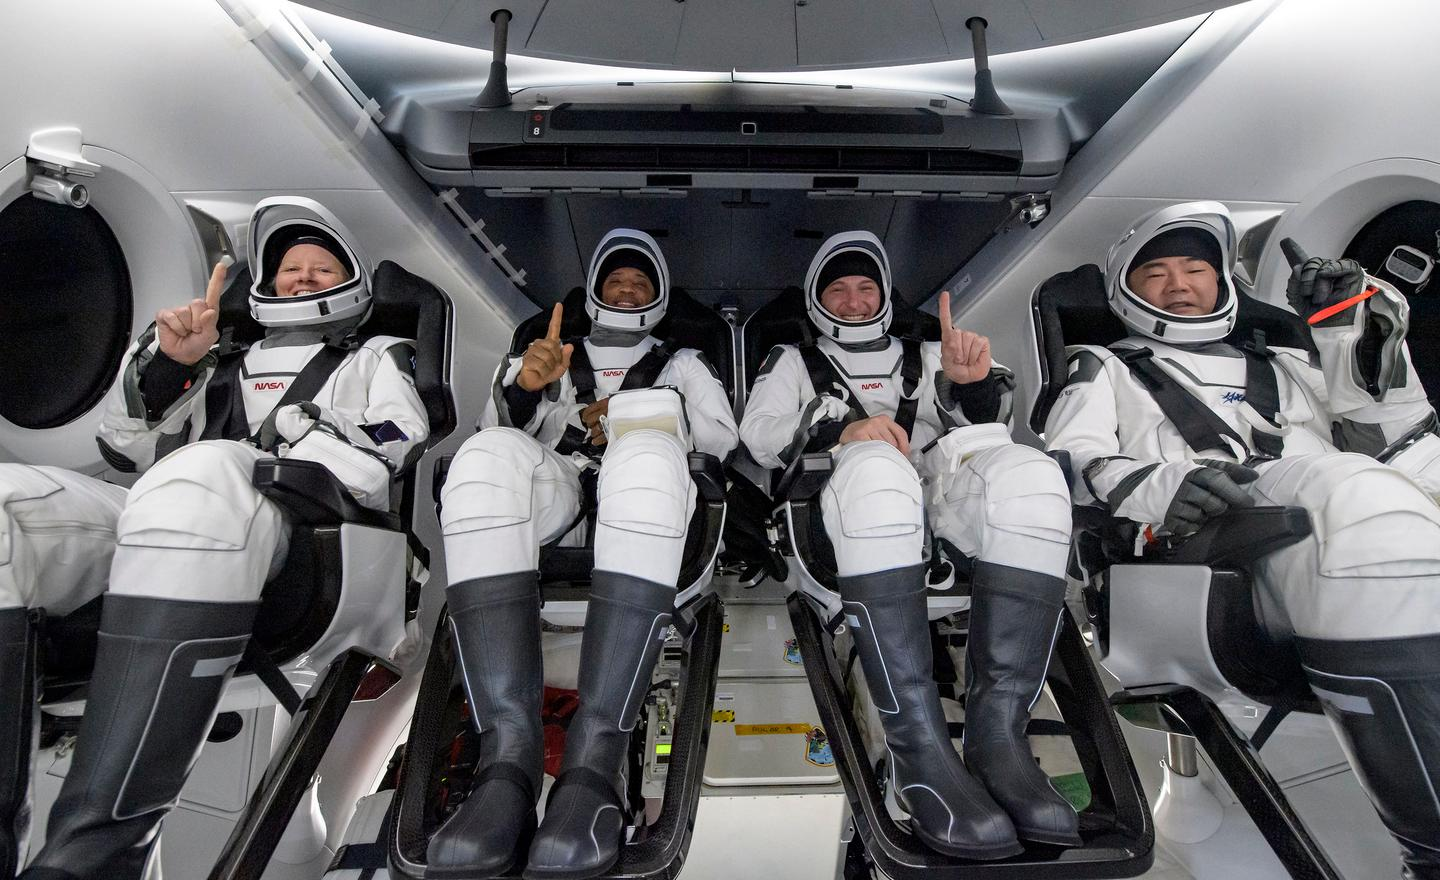 Astronauts Michael Hopkins, Victor Glover, Shannon Walker and Soichi Noguchi shortly after splashing down in SpaceX's Crew Dragon capsule